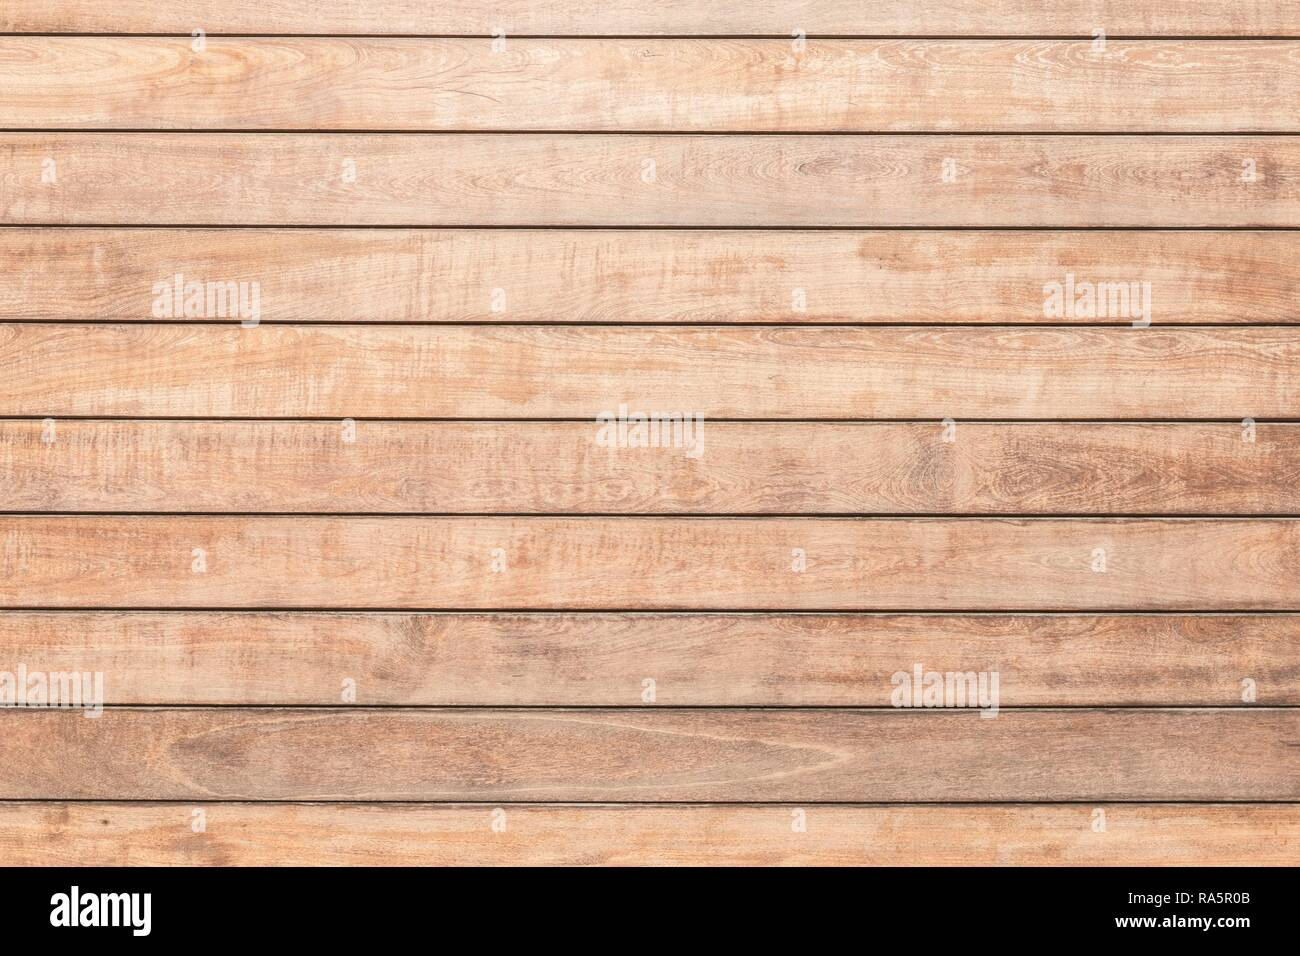 Beige-coloured wooden wall from horizontally laid single boards, Haria, Lanzarote, Canary Islands, Spain - Stock Image